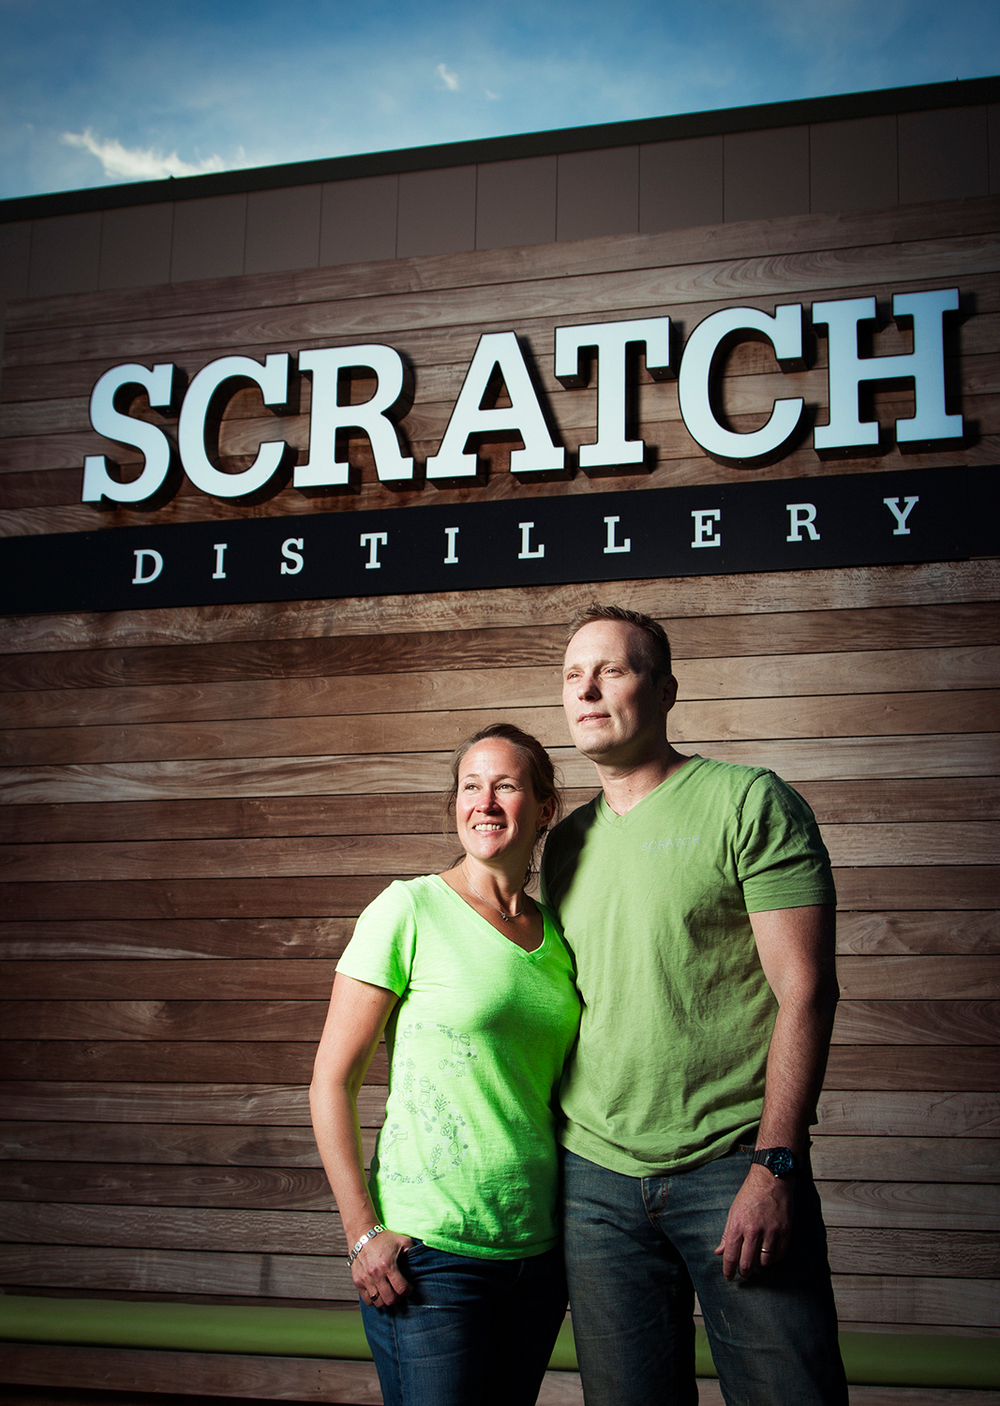 Scratch Distillery owners Kim and Bryan Karrick